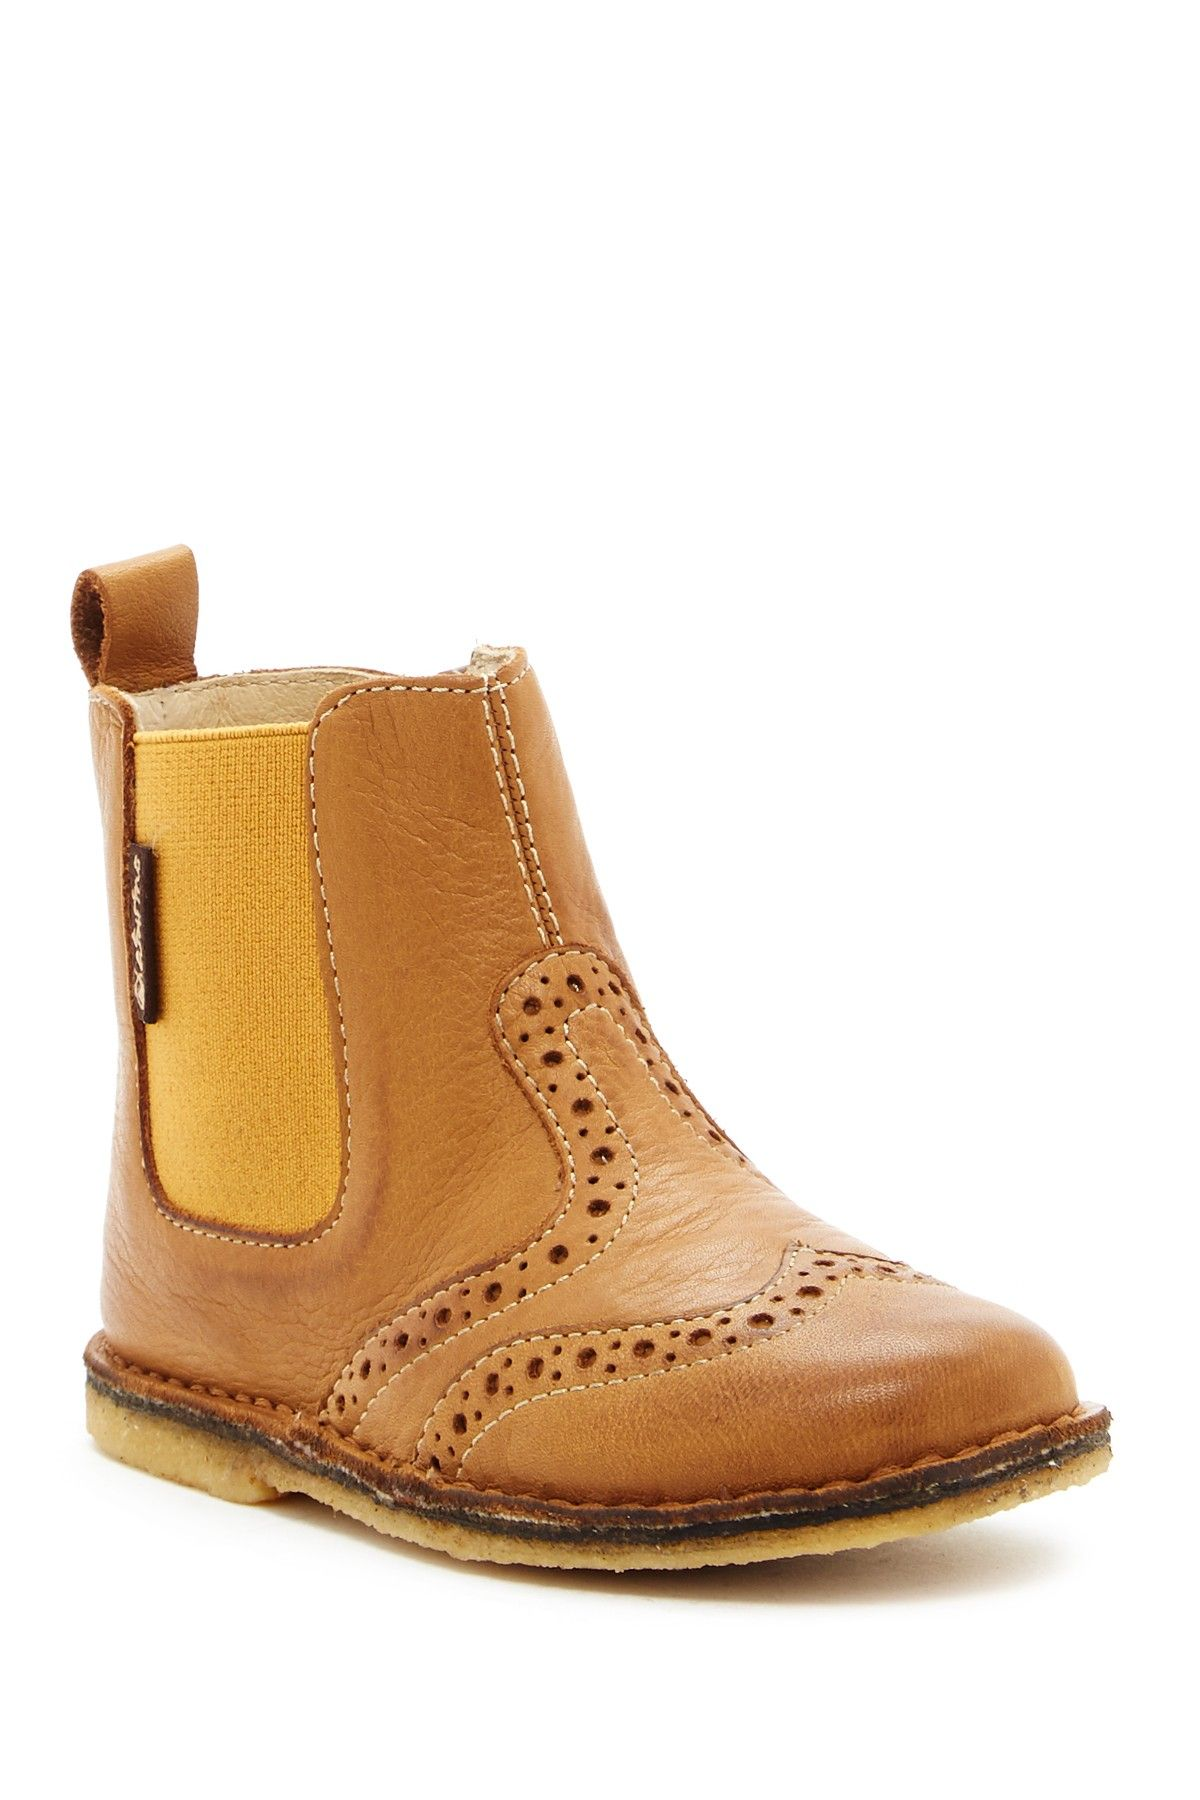 Nappa Spazz Marrone Boot (Toddler & Little Kid)